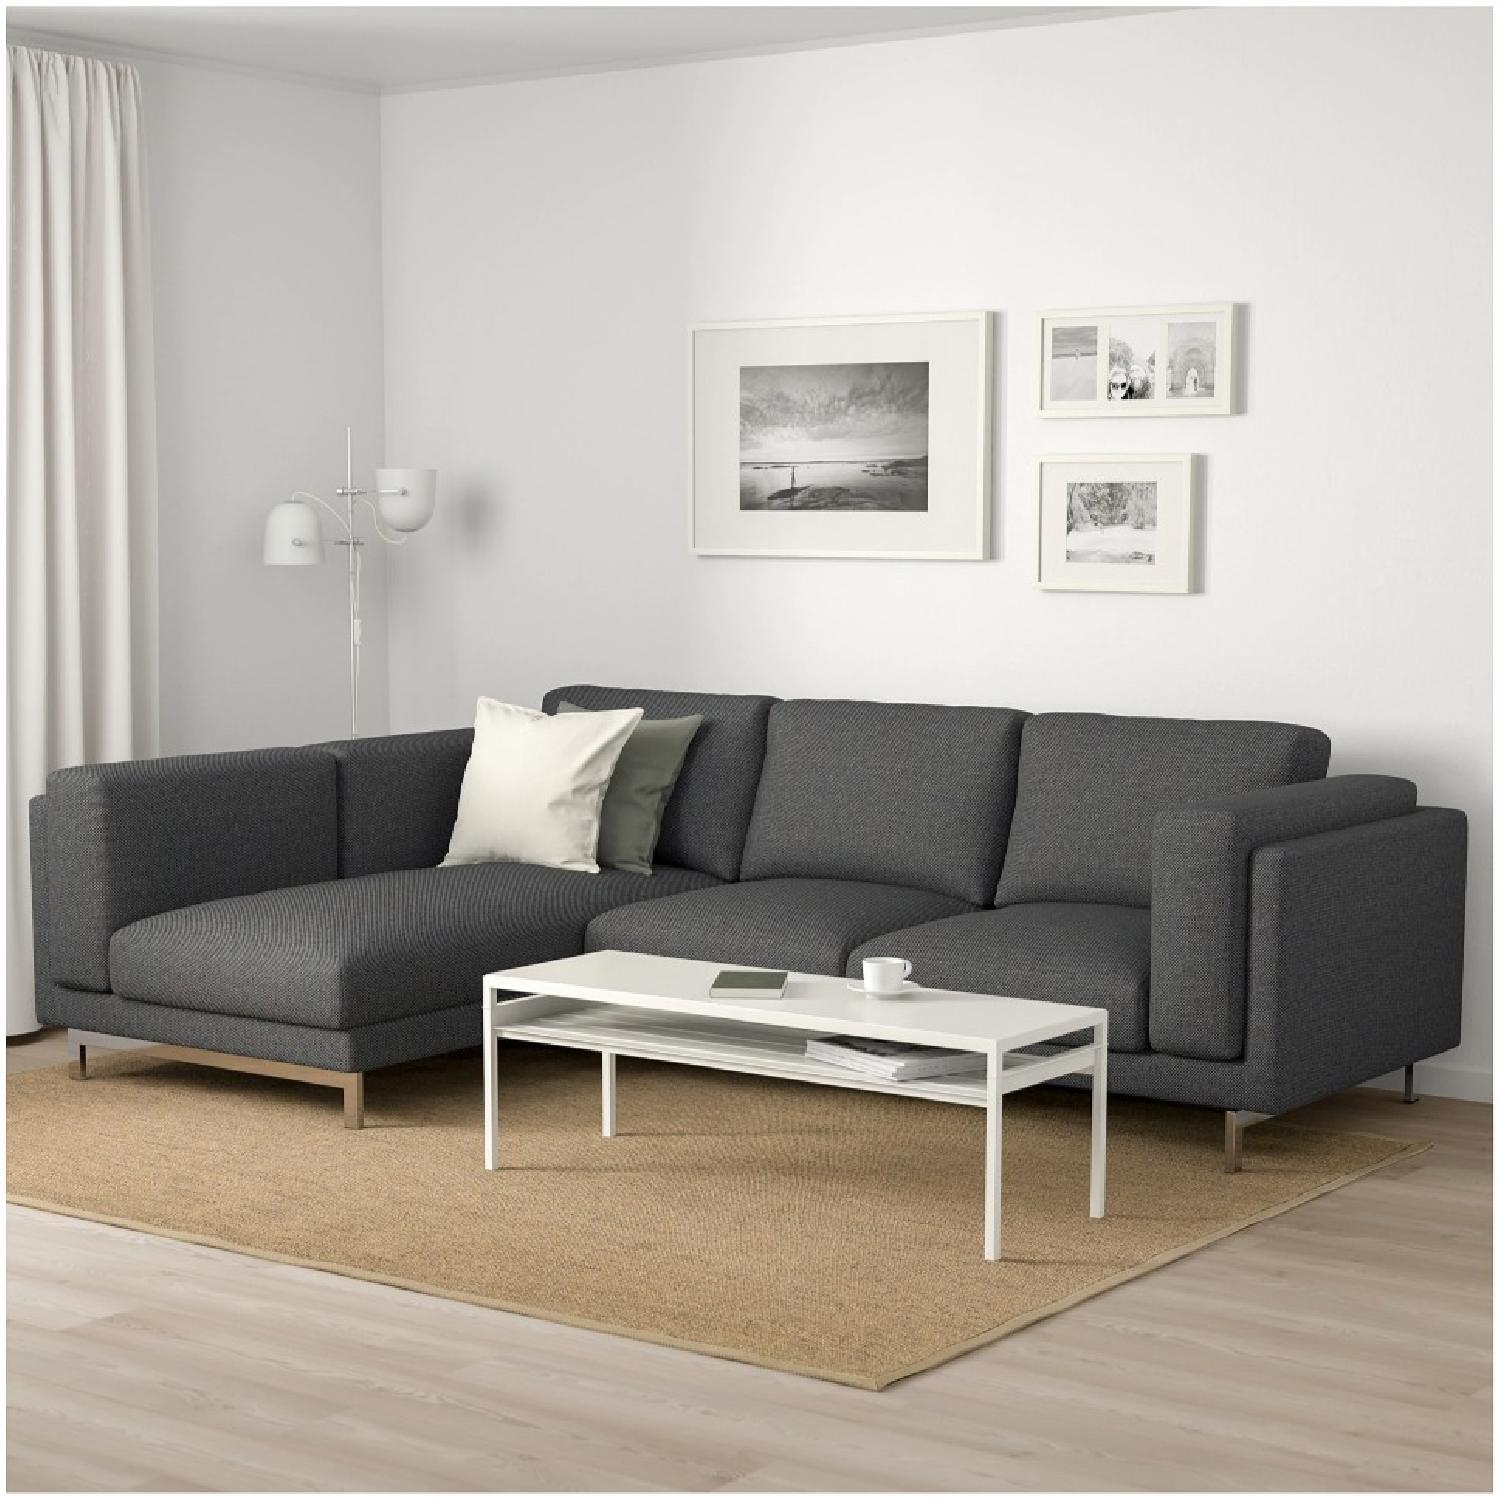 Ikea Nockeby Sectional Sofa w/ Right Chaise-2